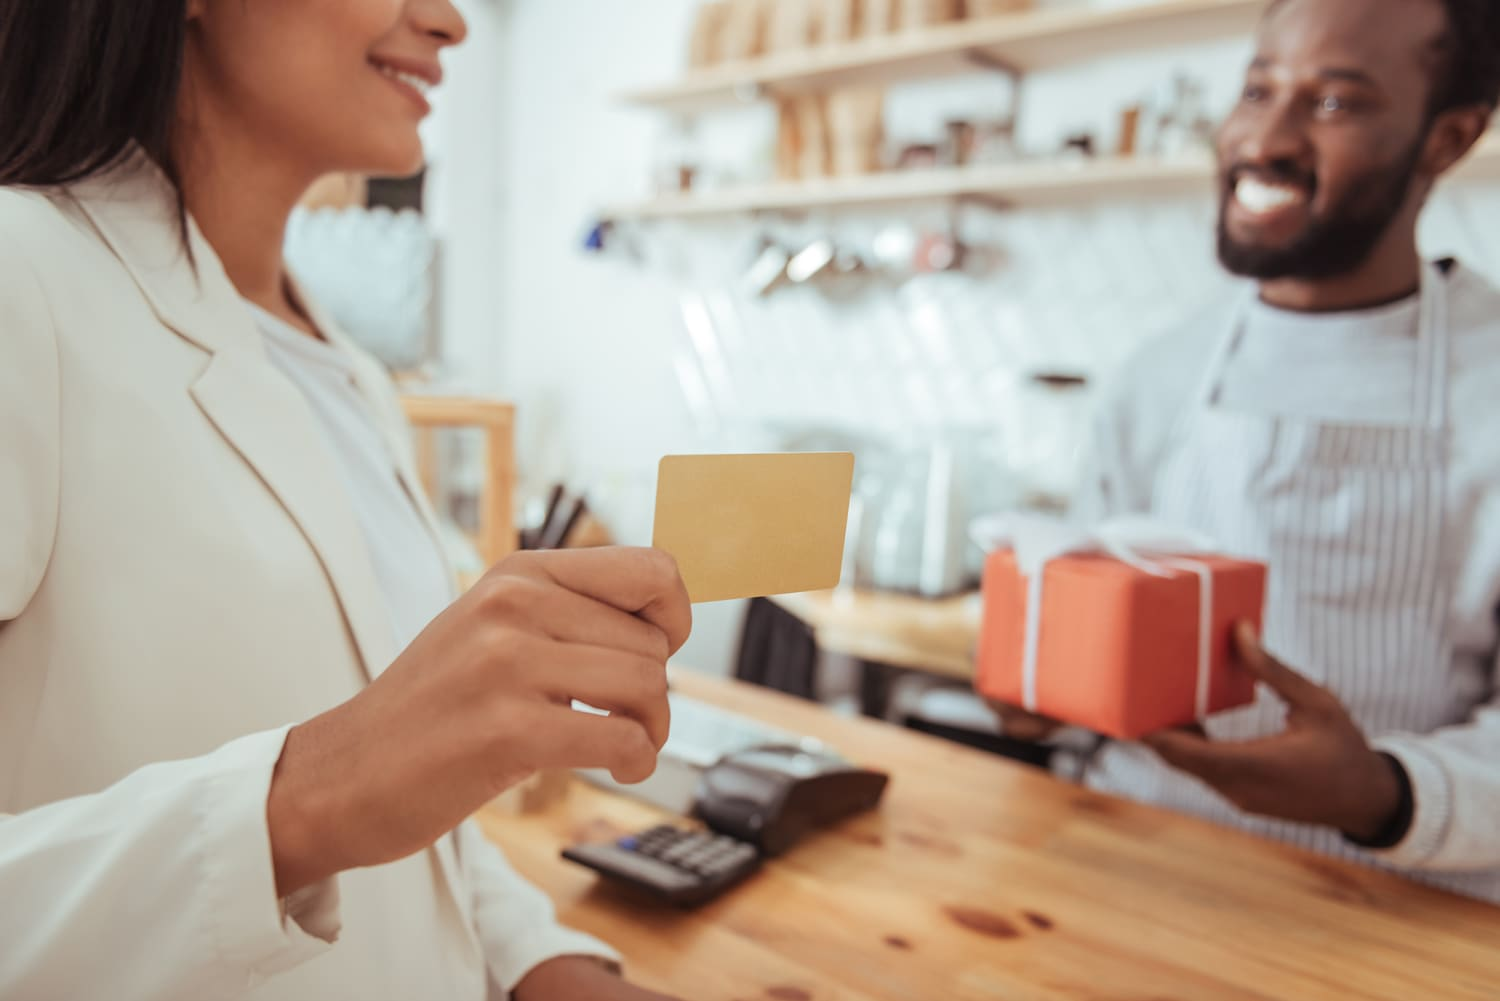 5 Places Where You Can Sell Gift Cards (Online and In Person)